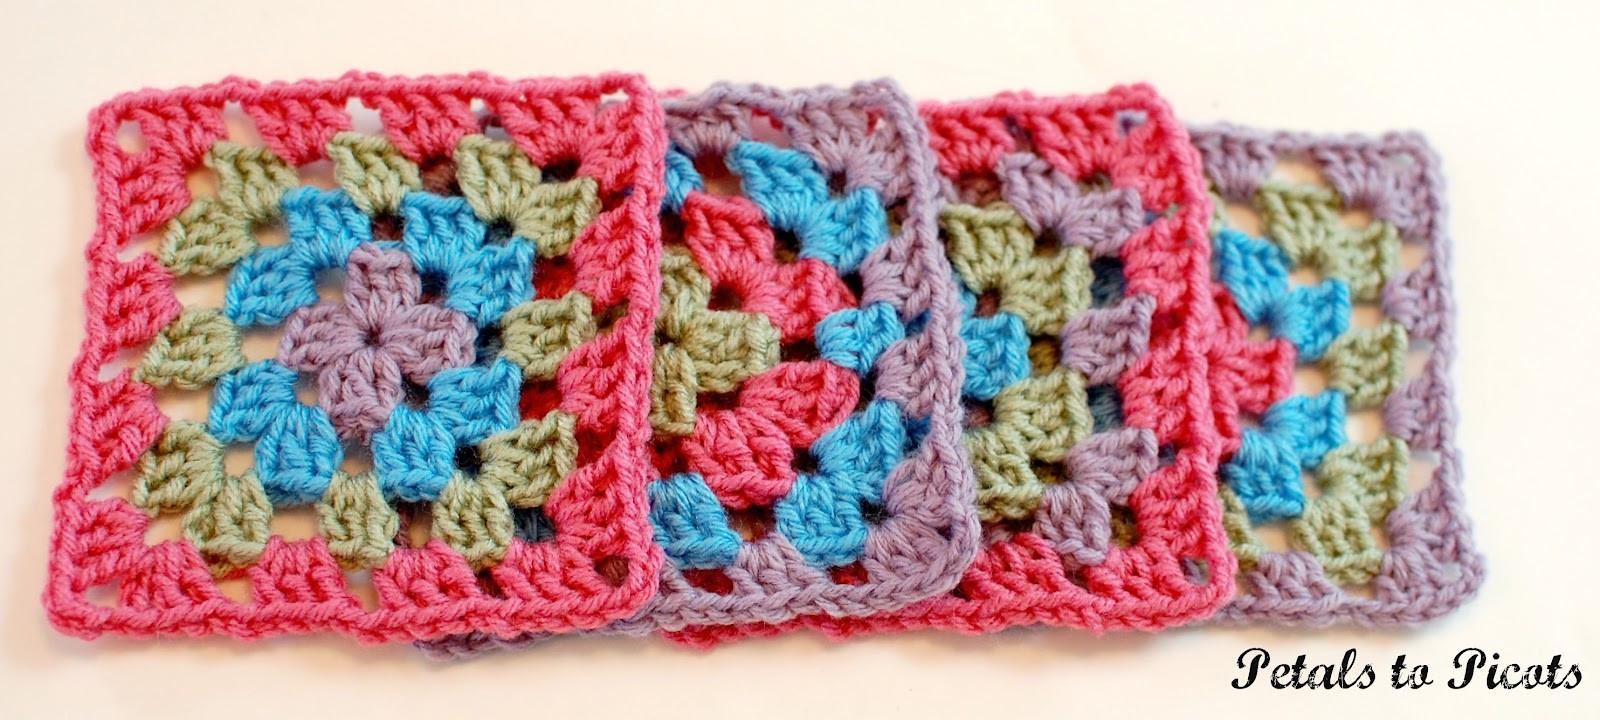 Easy Crochet Granny Squares Free Patterns Luxury How to Crochet A Classic Granny Square Granny Square Of Lovely 40 Ideas Easy Crochet Granny Squares Free Patterns